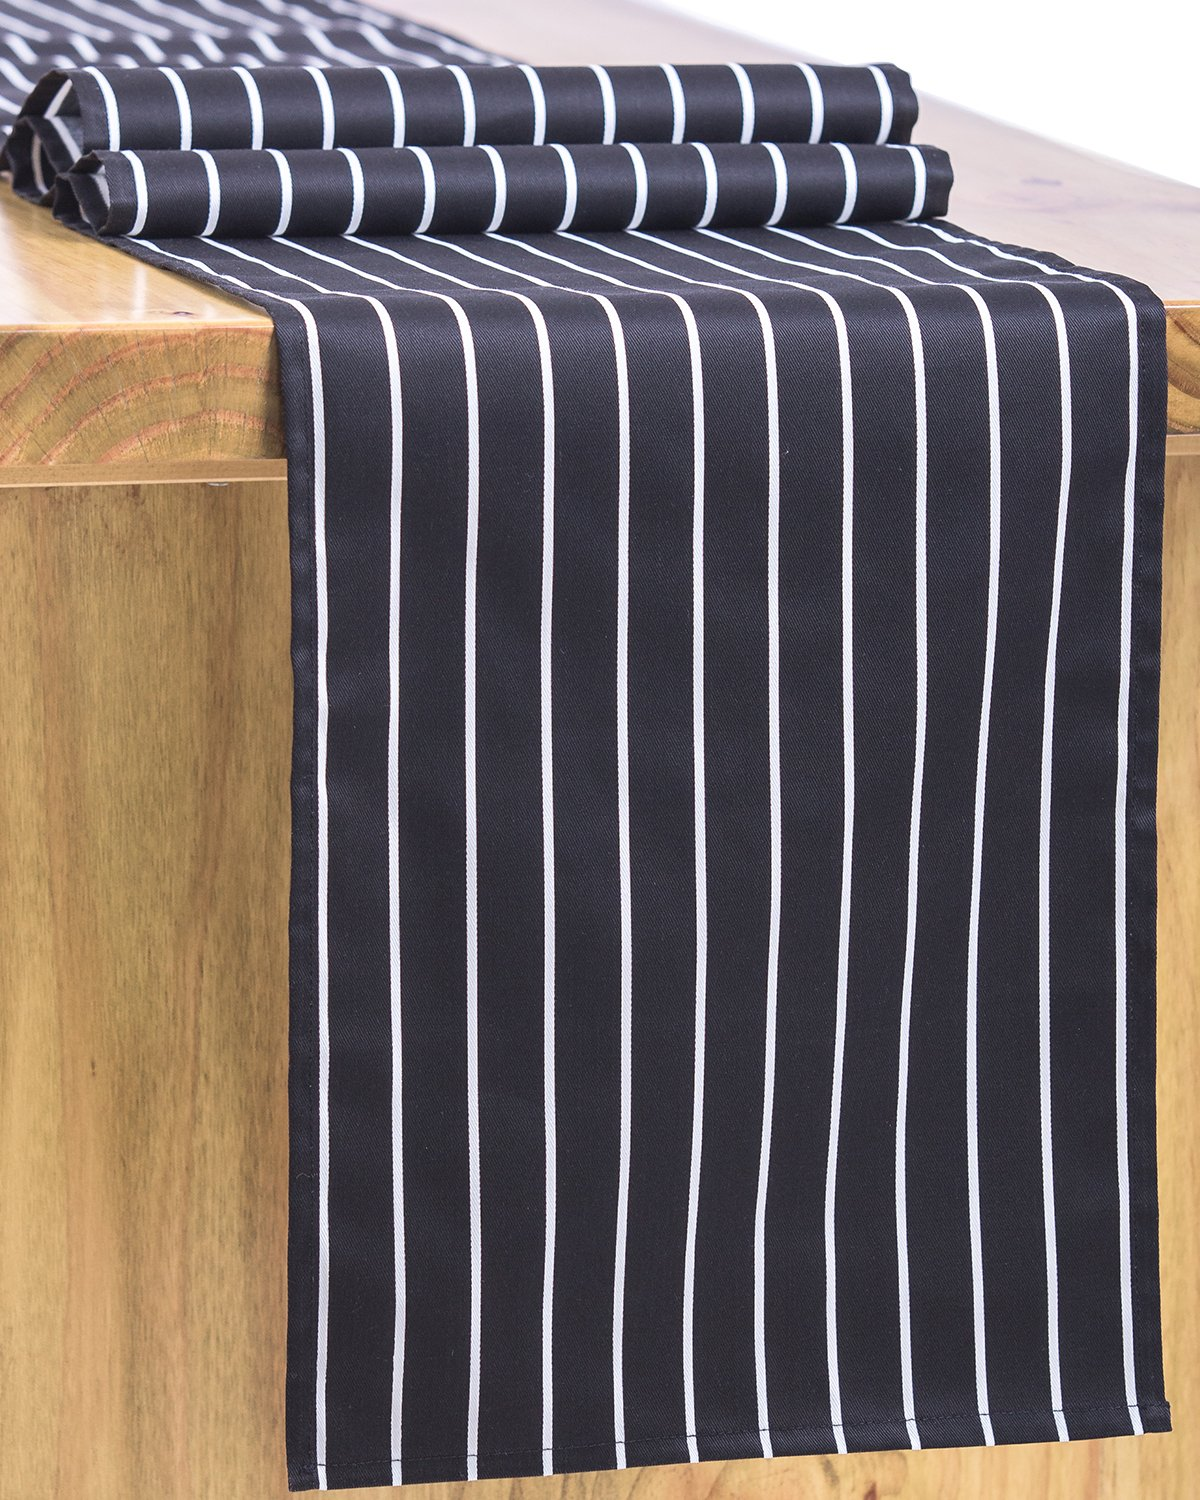 Letjolt Classical Black Striped Table Runner for Wedding Decorations Bachelorette Party Decorations Off to College Decorations, 12'' x 72''